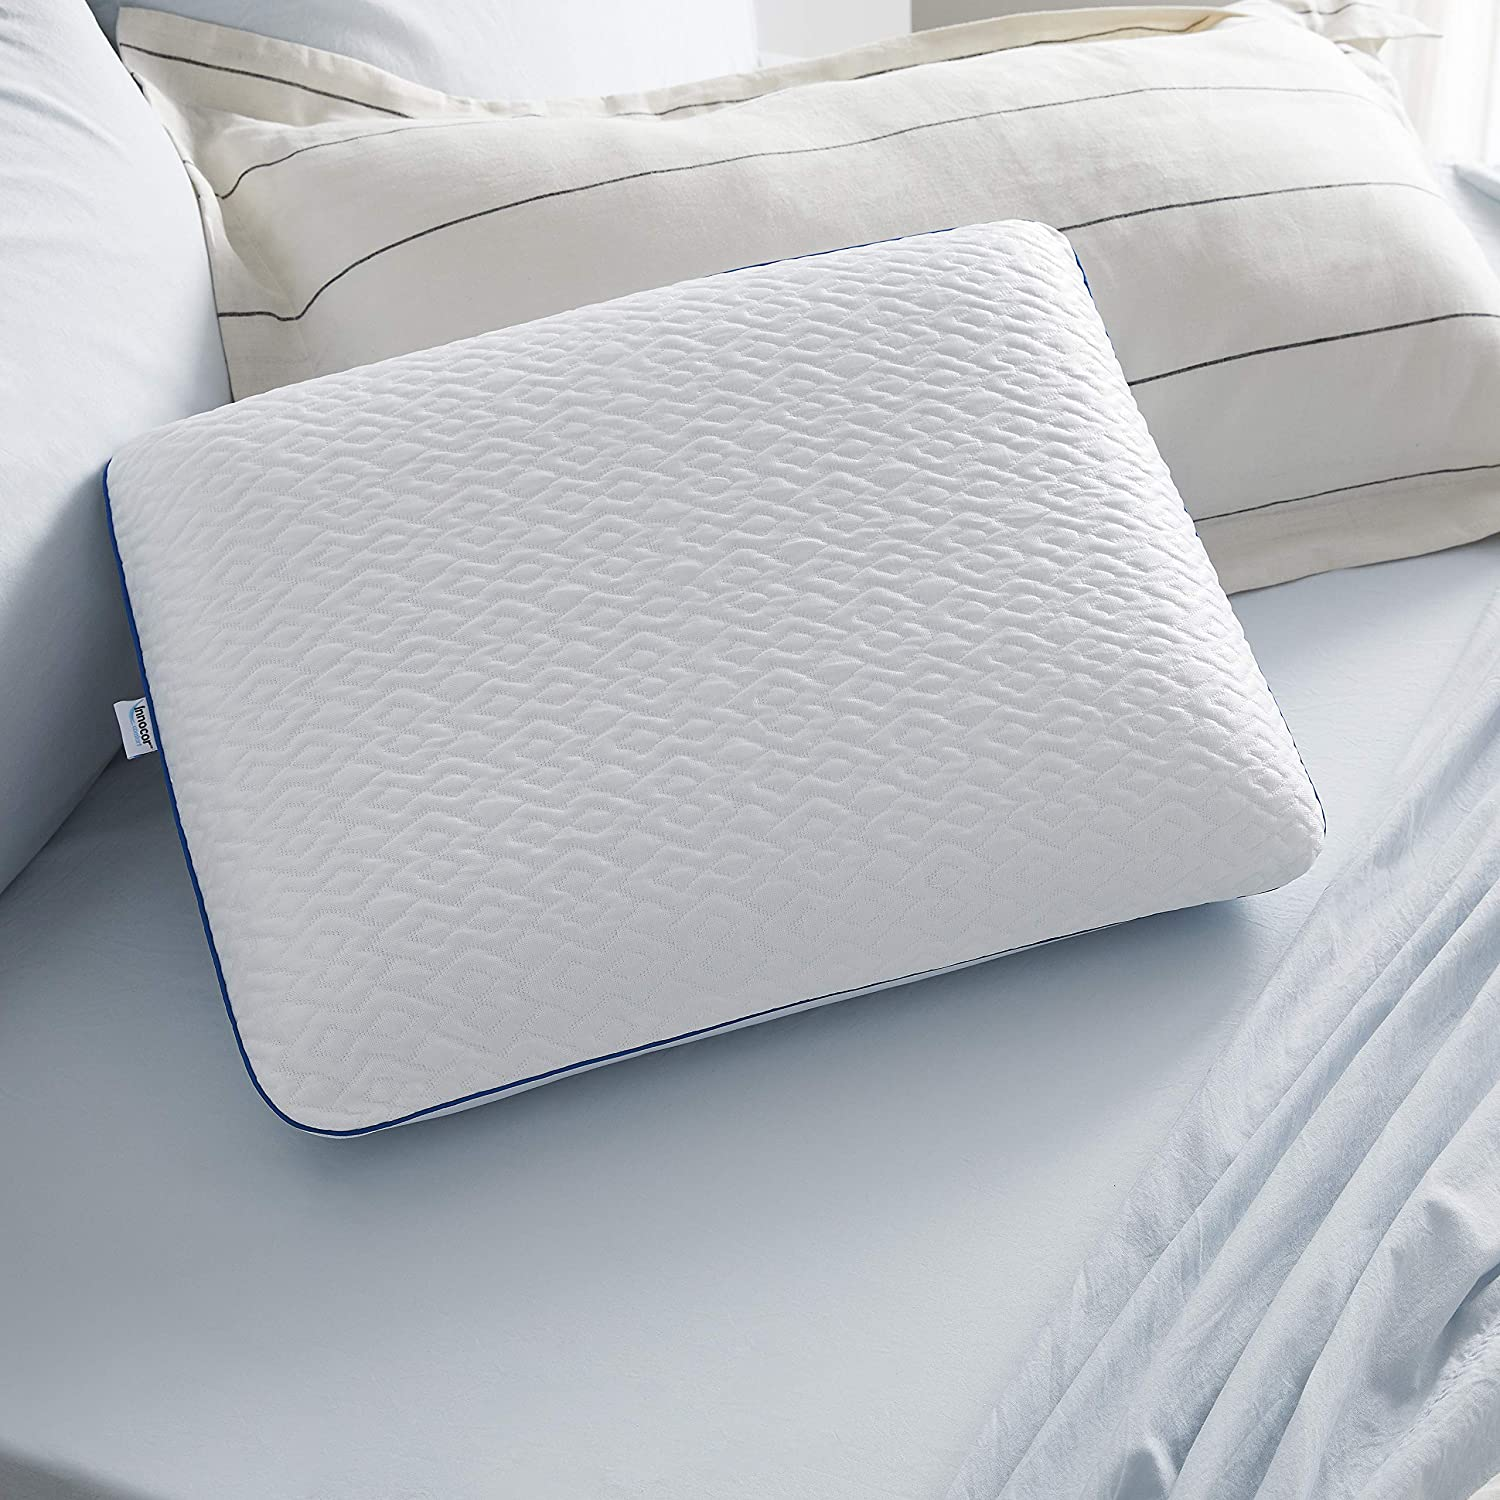 Amazon Com Sleep Innovations Forever Cool Gel Memory Foam Pillow Standard Made In The Usa Home Kitchen